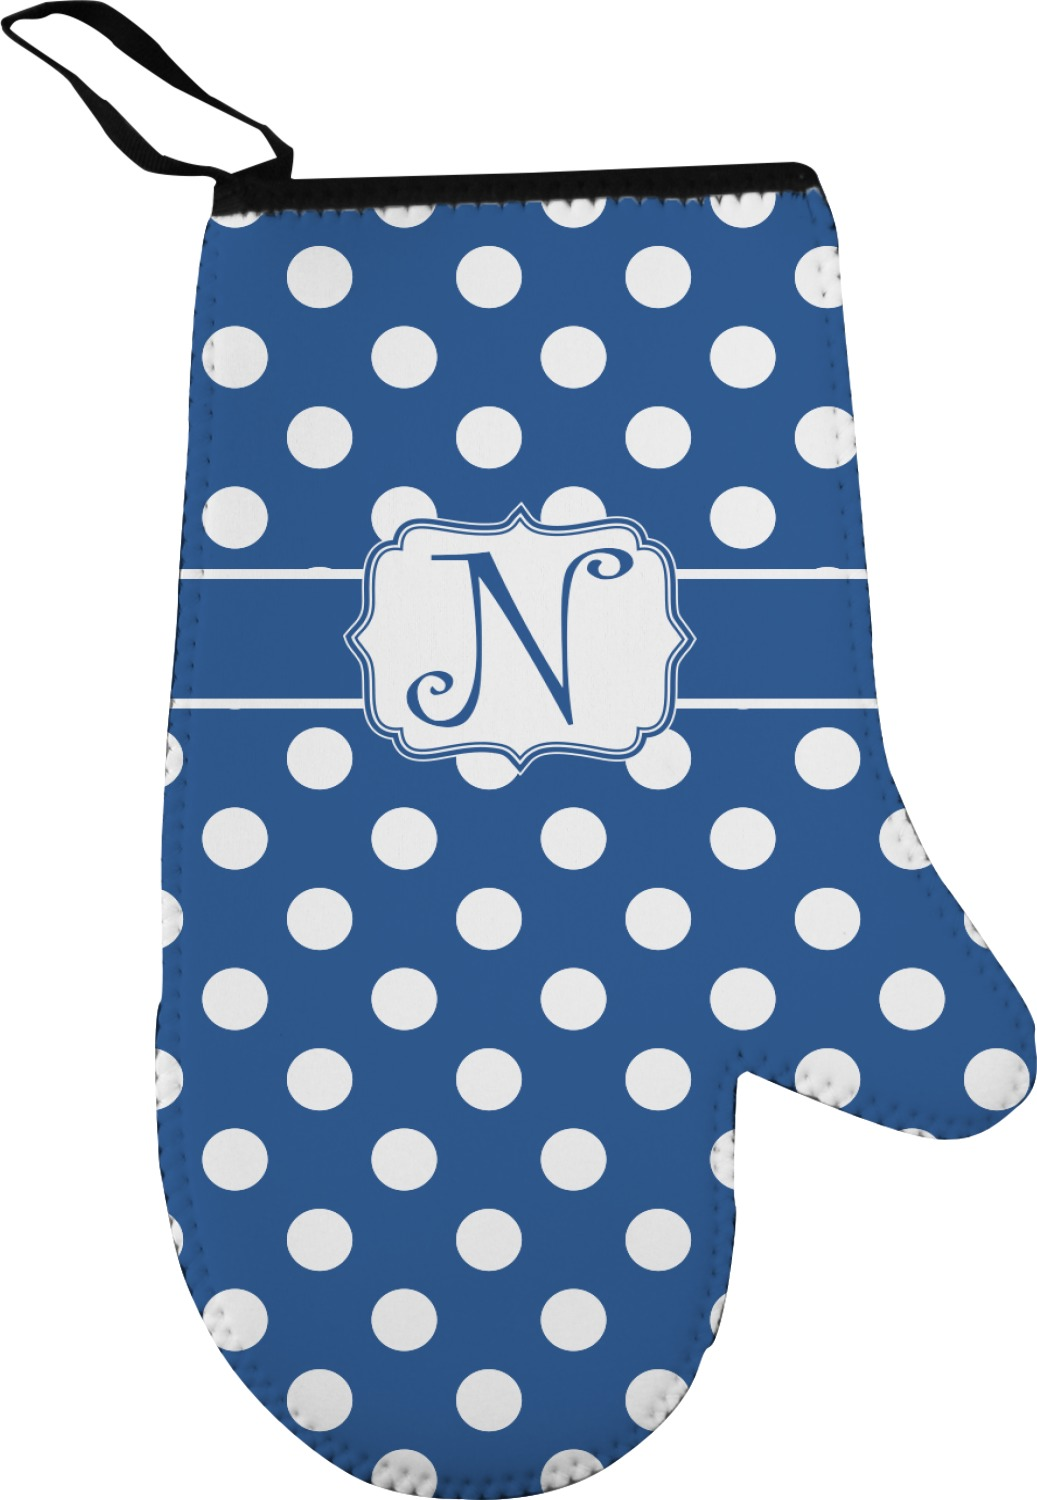 Polka Dots Right Oven Mitt Personalized